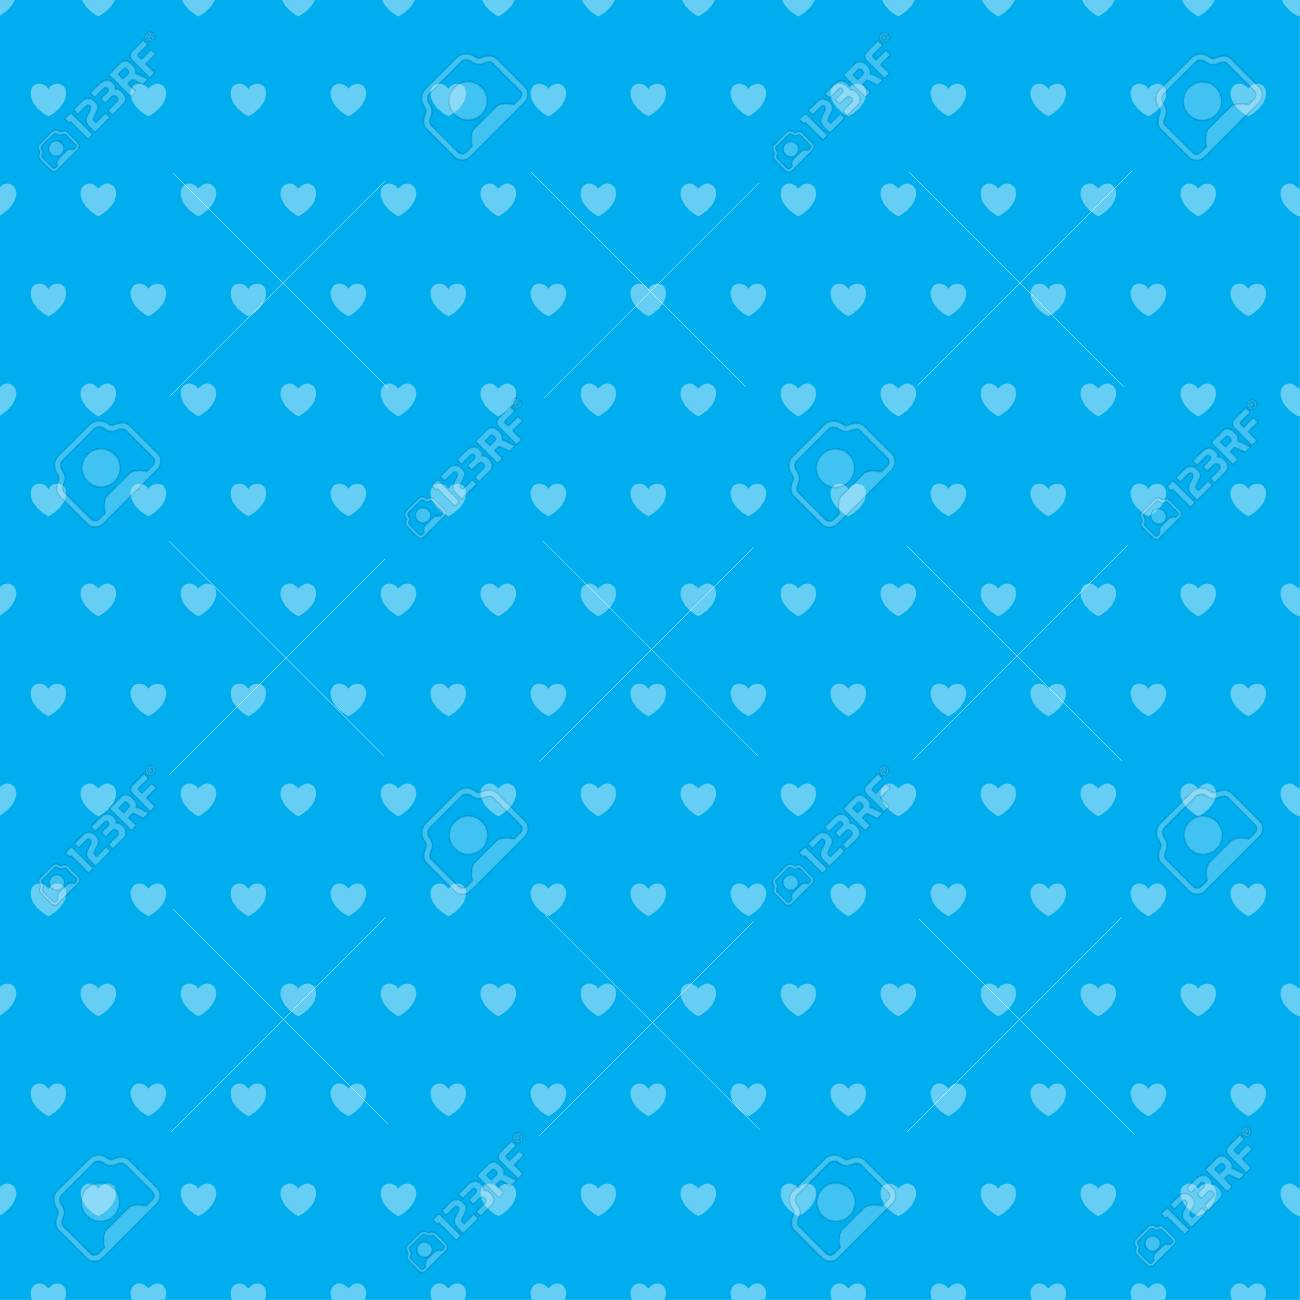 Abstract heart seamless pattern. - 114708493